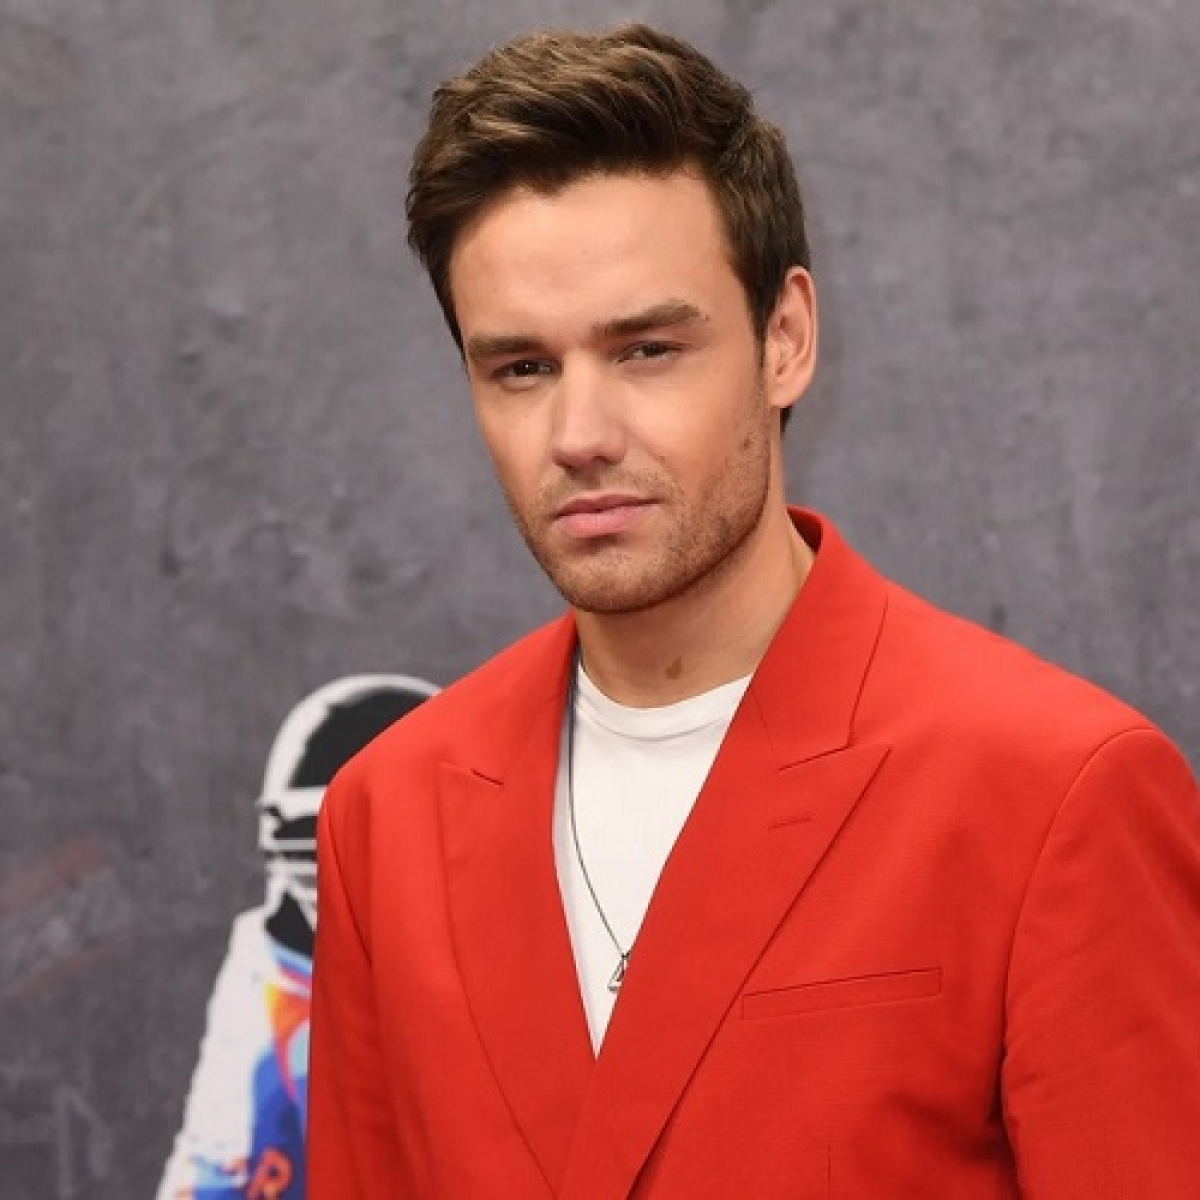 'I think we've got a lot more to come,' says Liam Payne about One Direction